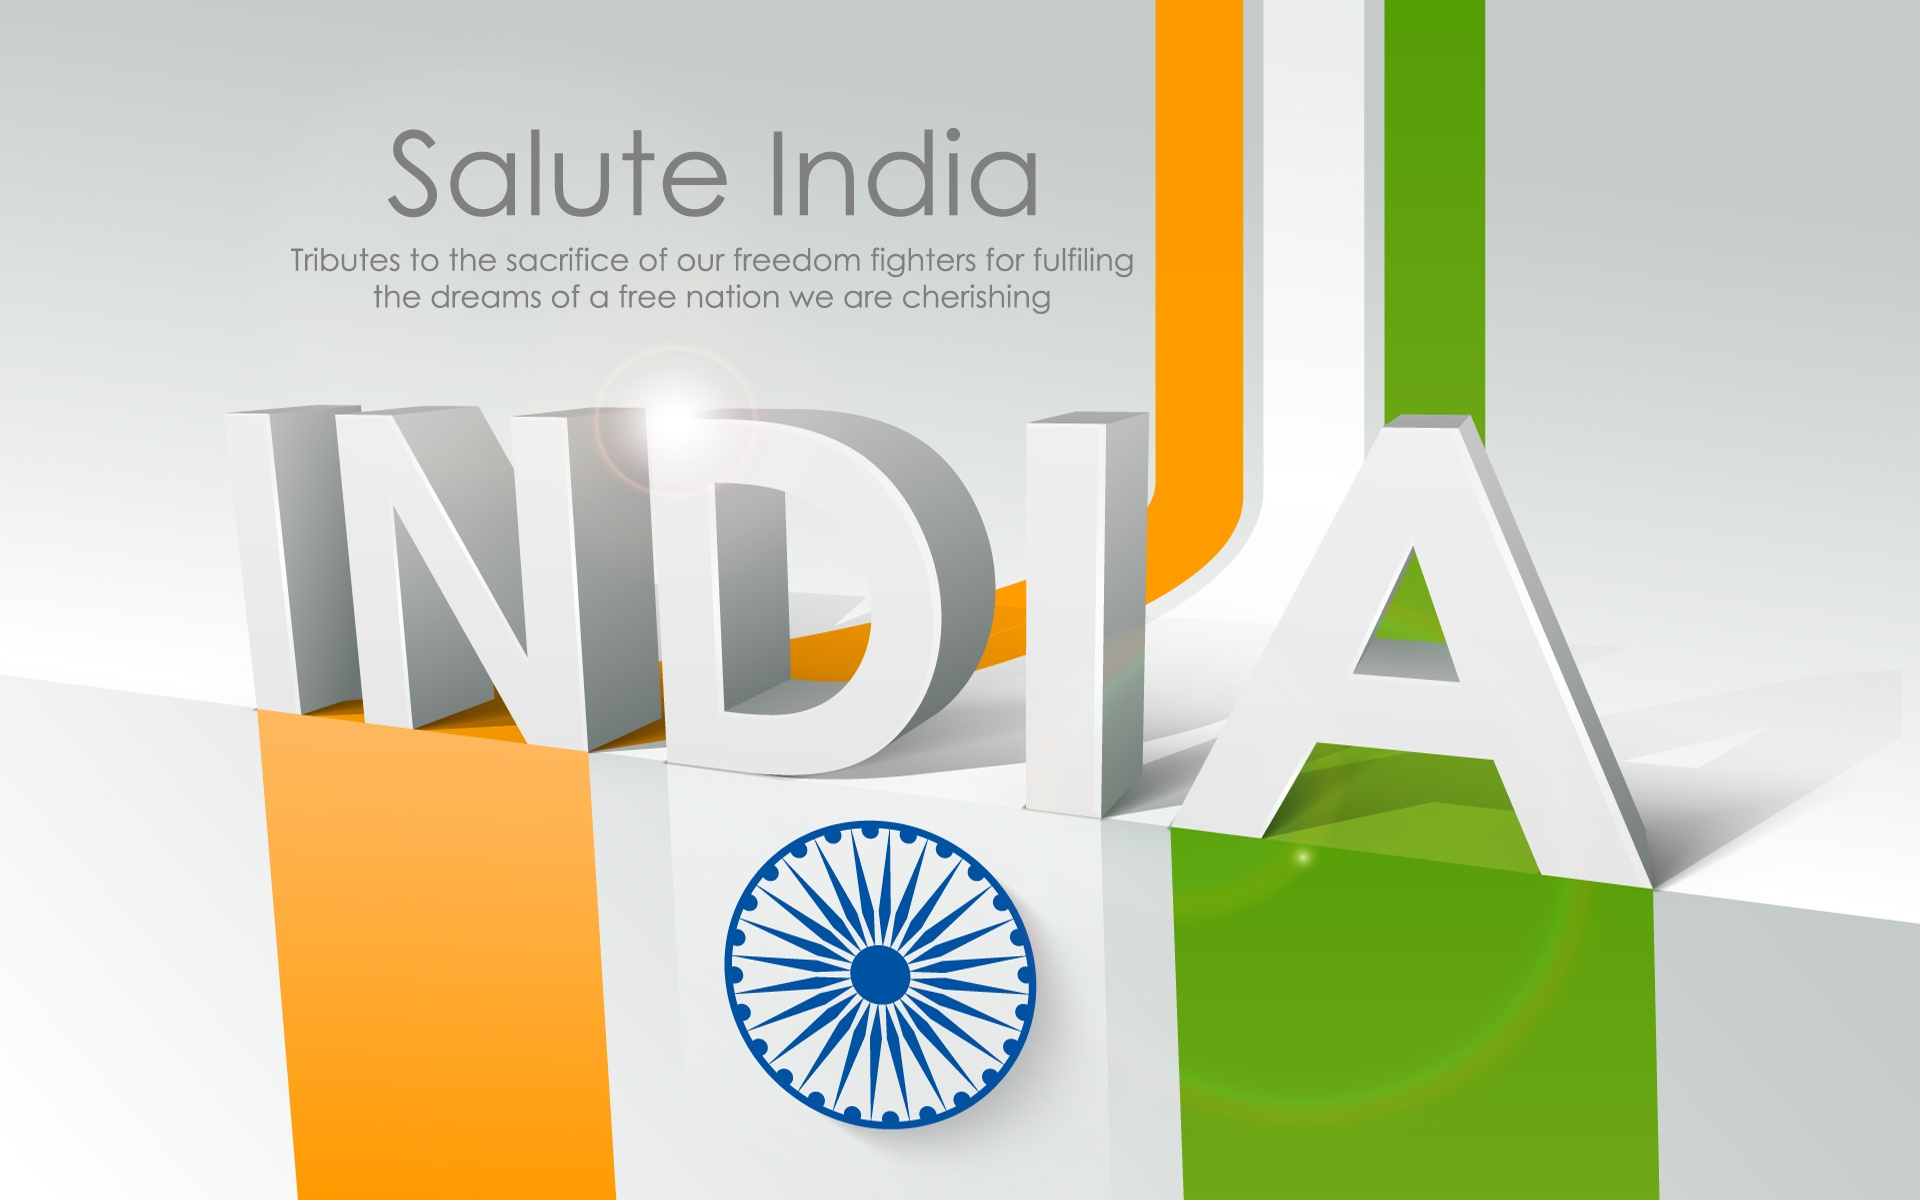 Salute India Republic Day Wallpapers 1920x1200 248764